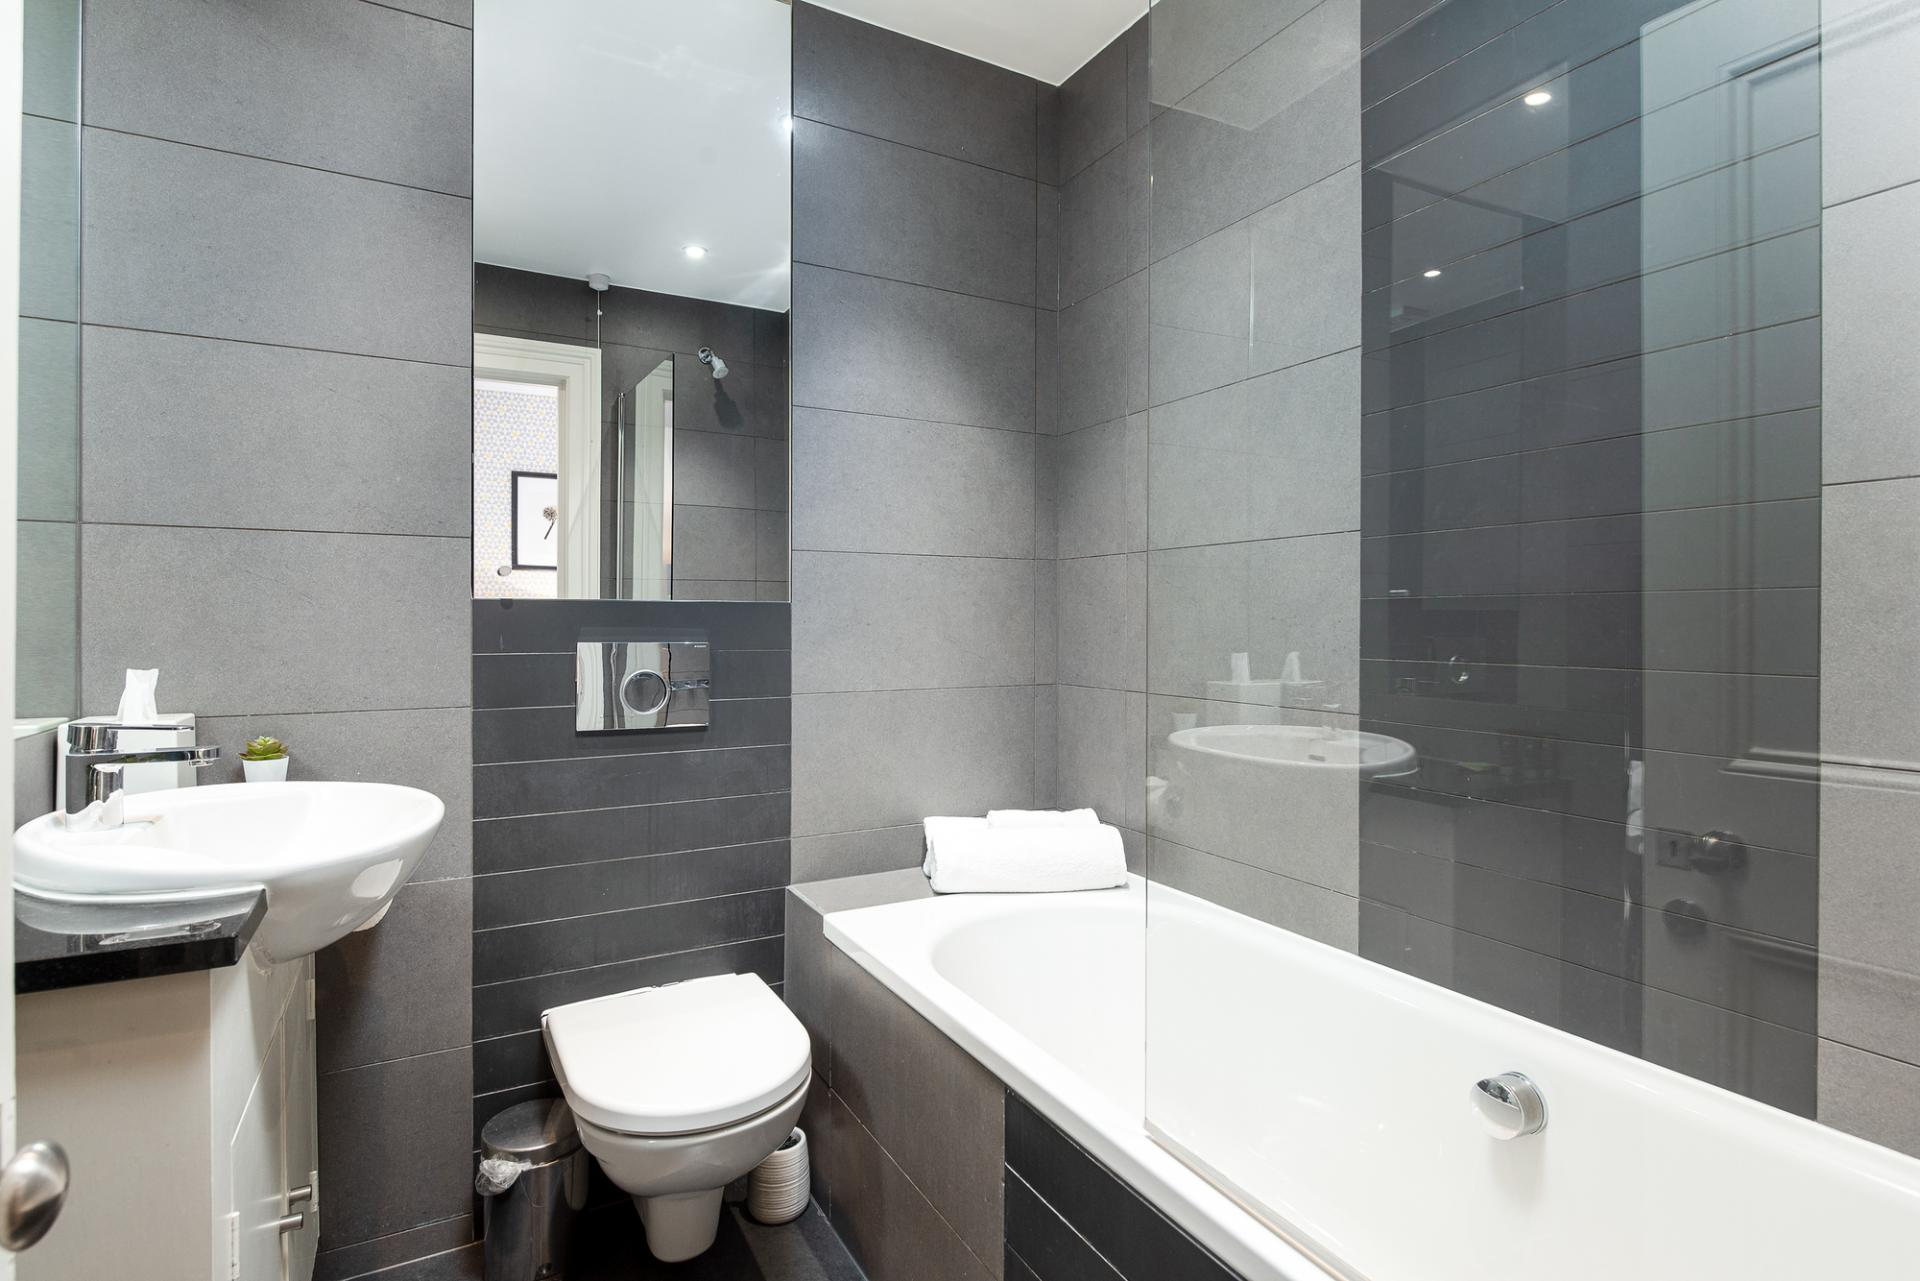 Bathroom at Draycott Place Serviced Apartments, Chelsea, London - Citybase Apartments